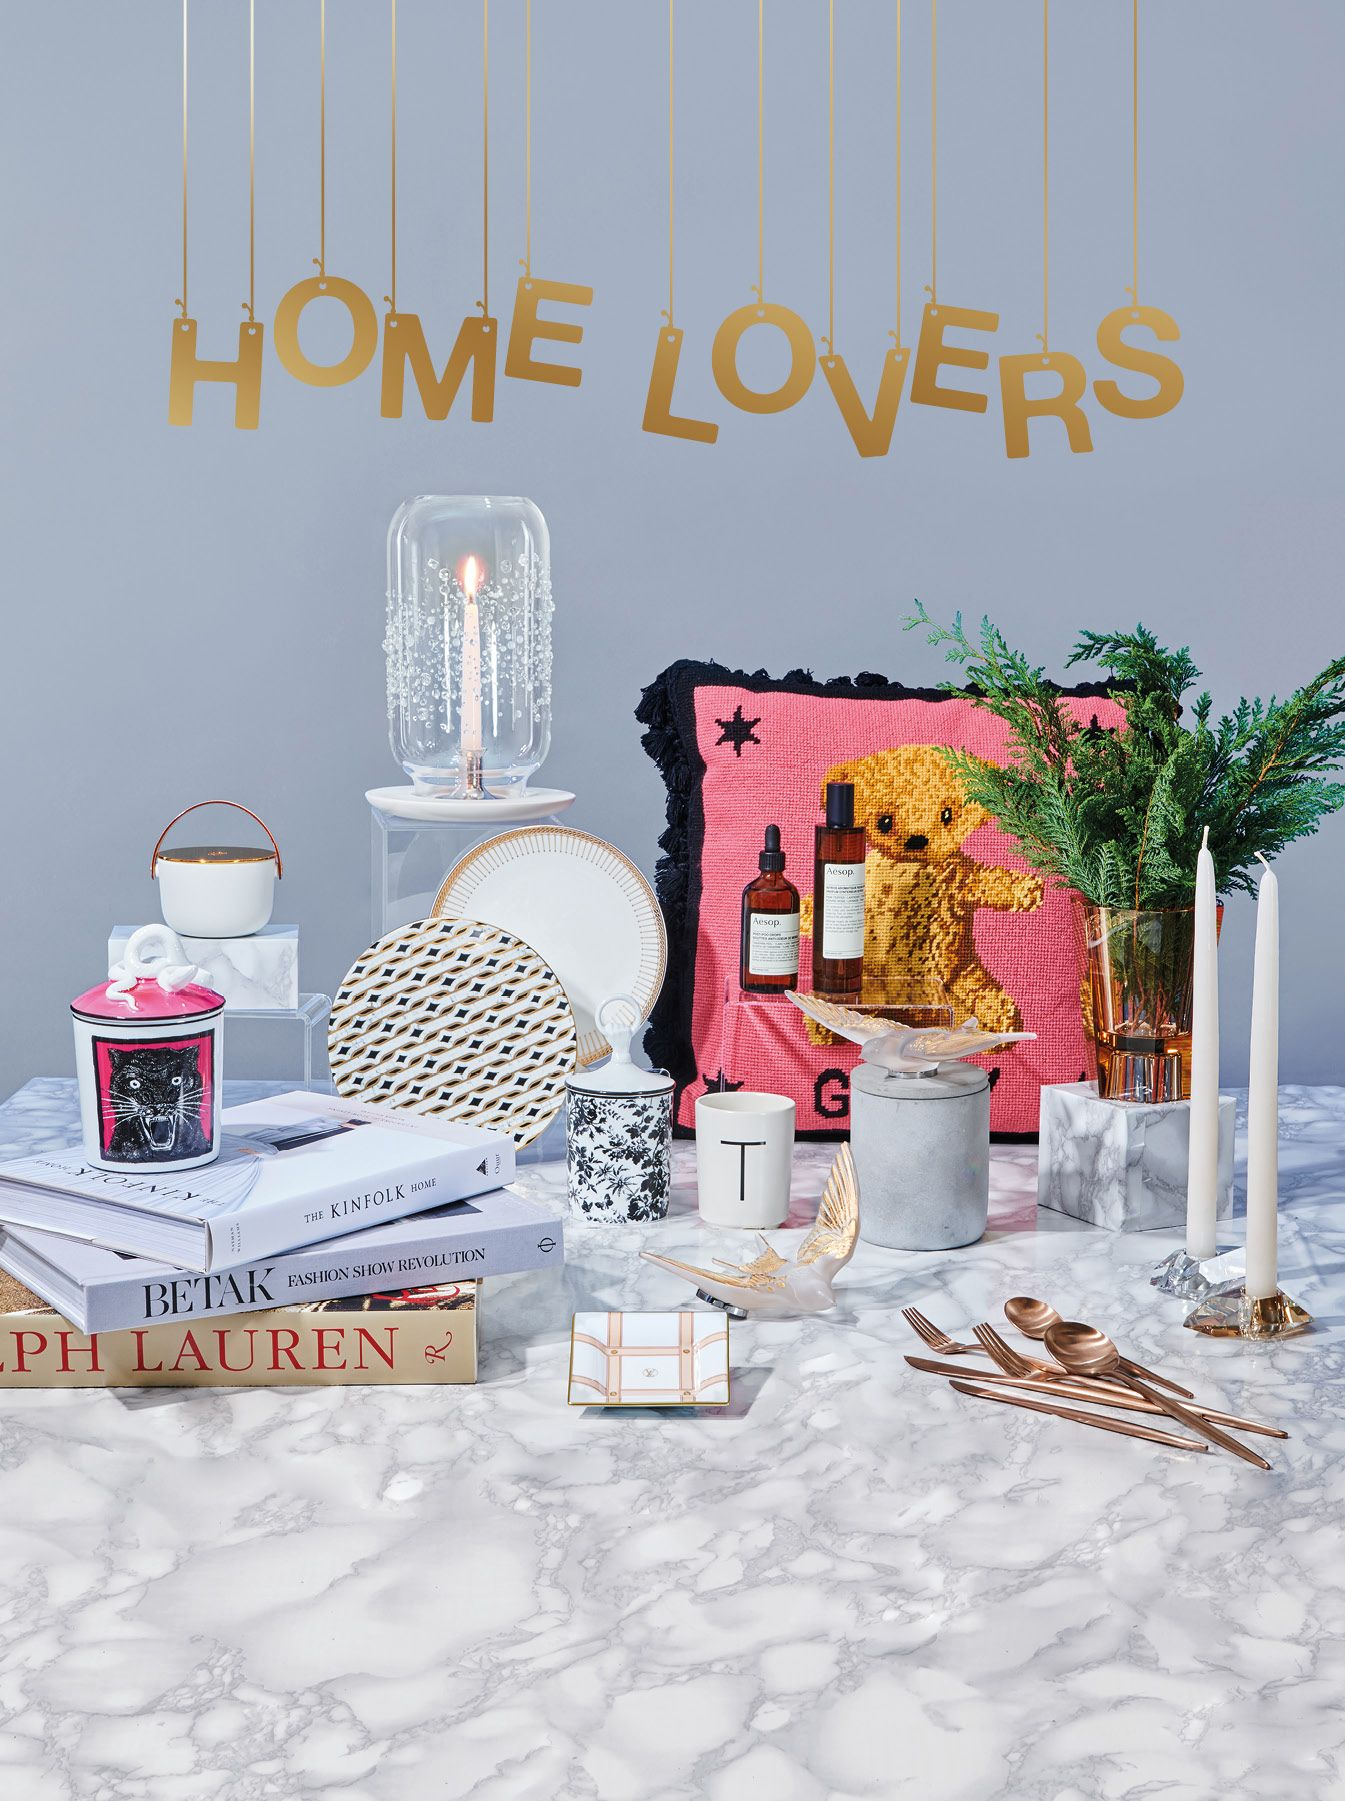 20 Gorgeous Home Decor Christmas Gift Ideas